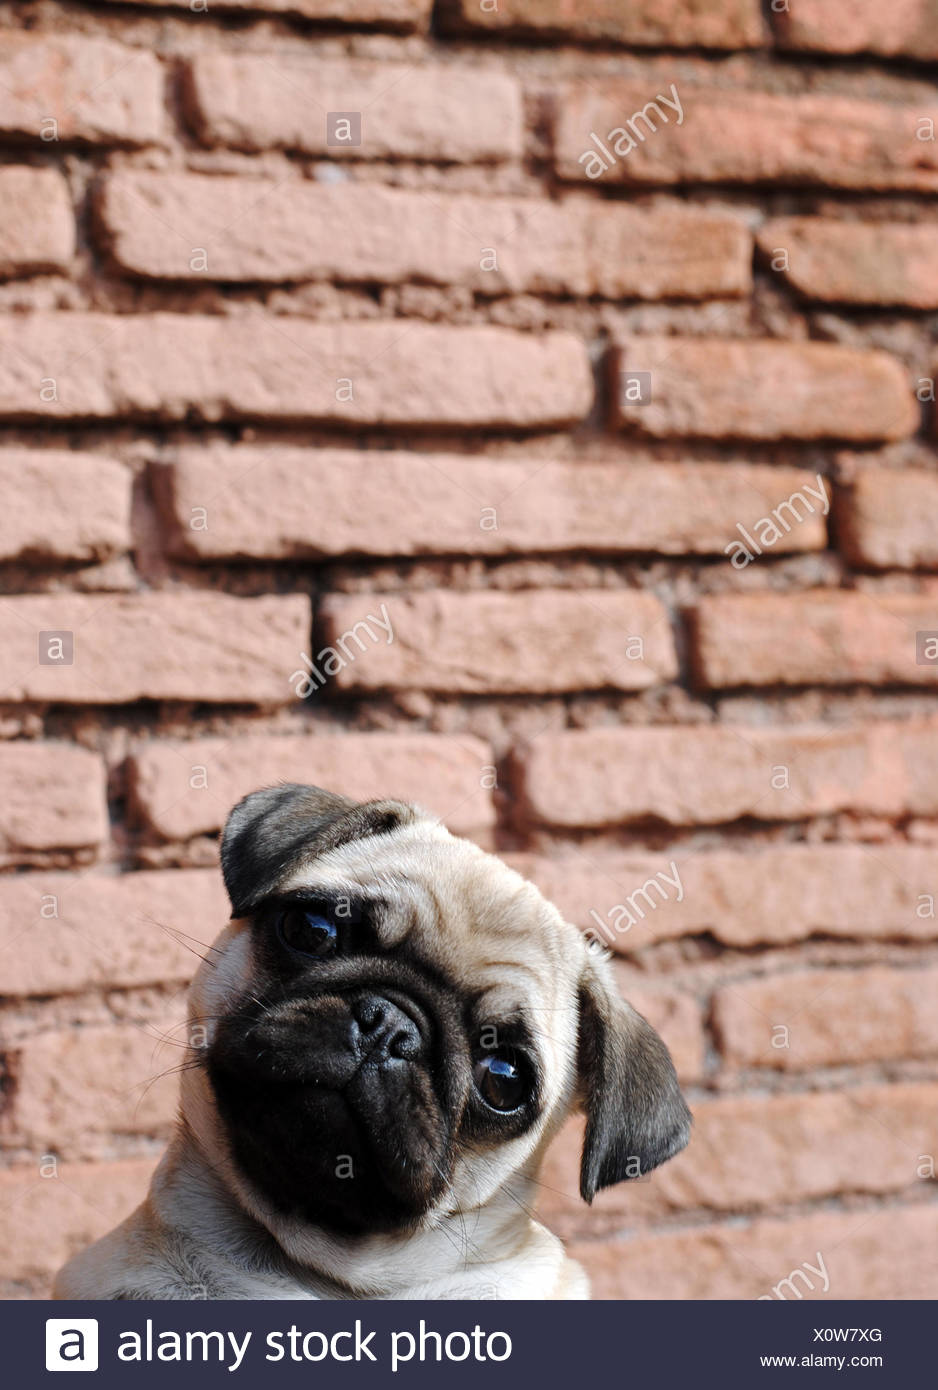 Portrait of pug against brick wall - Stock Image